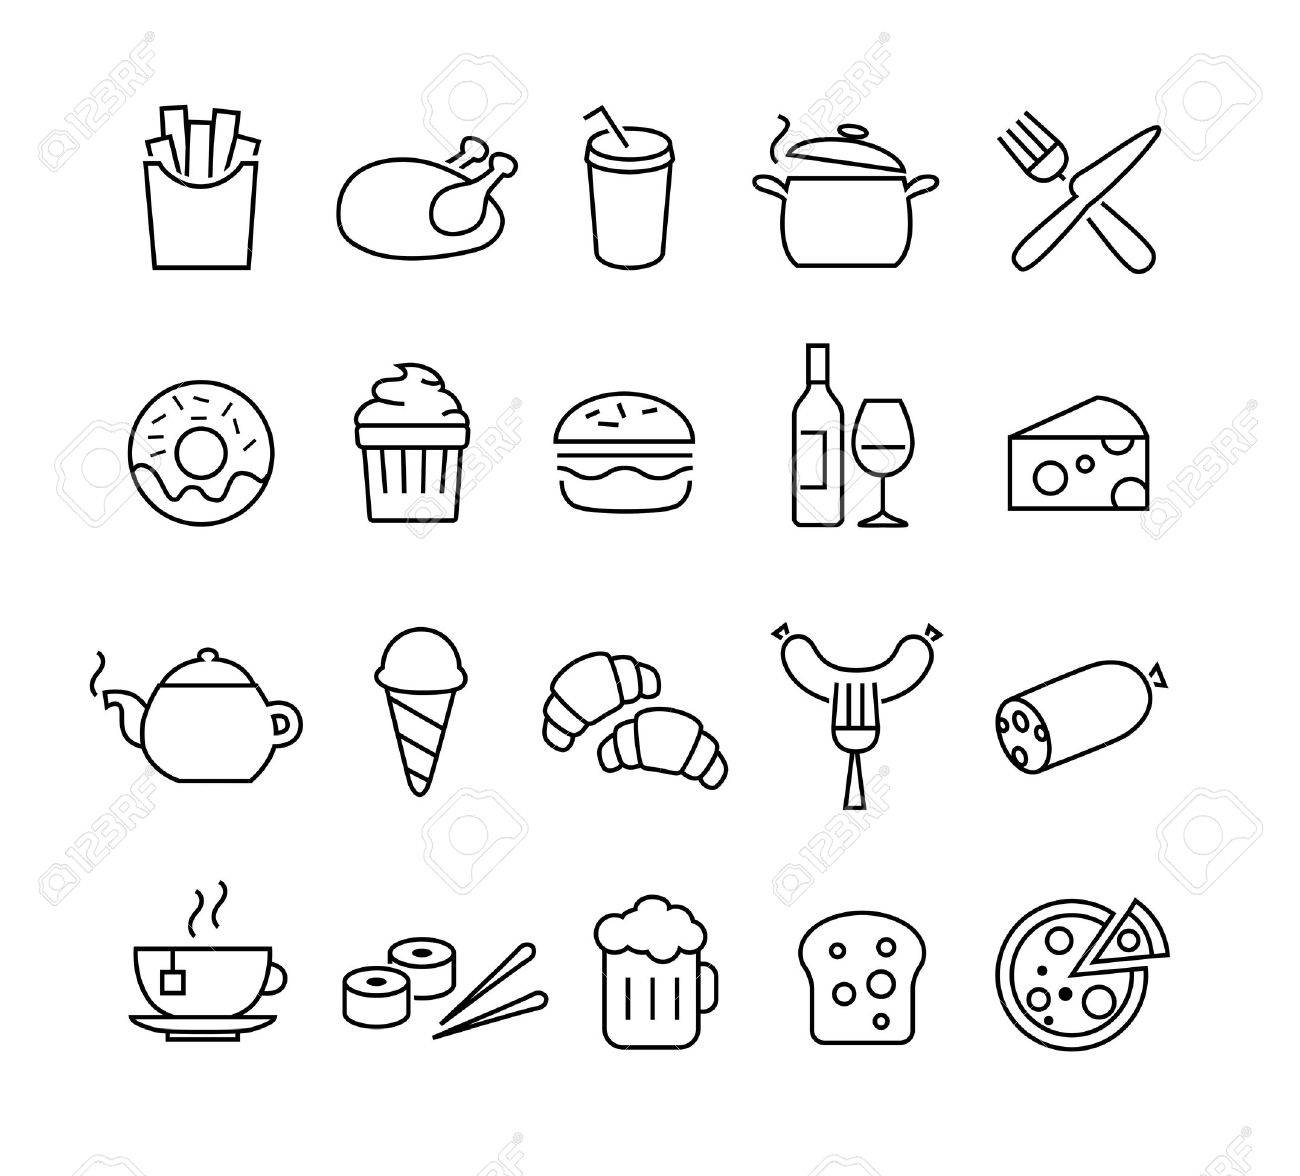 Collection of thin lines icons representing food and cooking. Suitable for print, web or mobile apps design. - 50454595